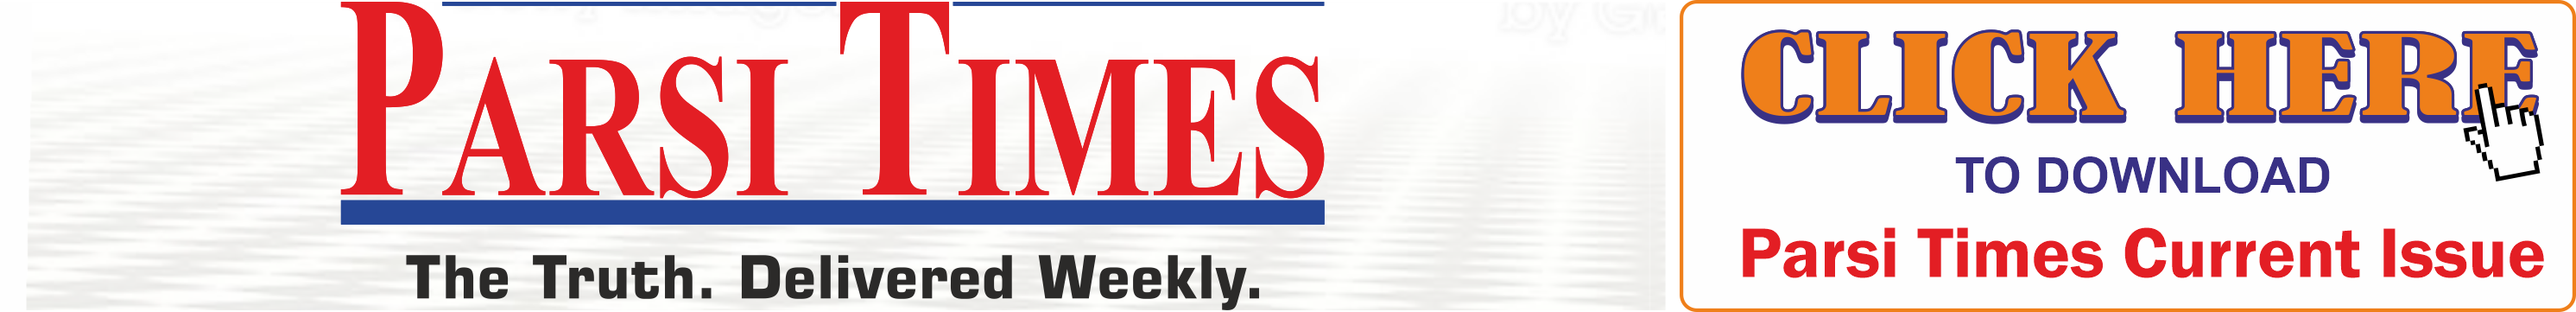 Parsi Times A Holistic Weekly For The Parsi Irani Zoroastrian Community